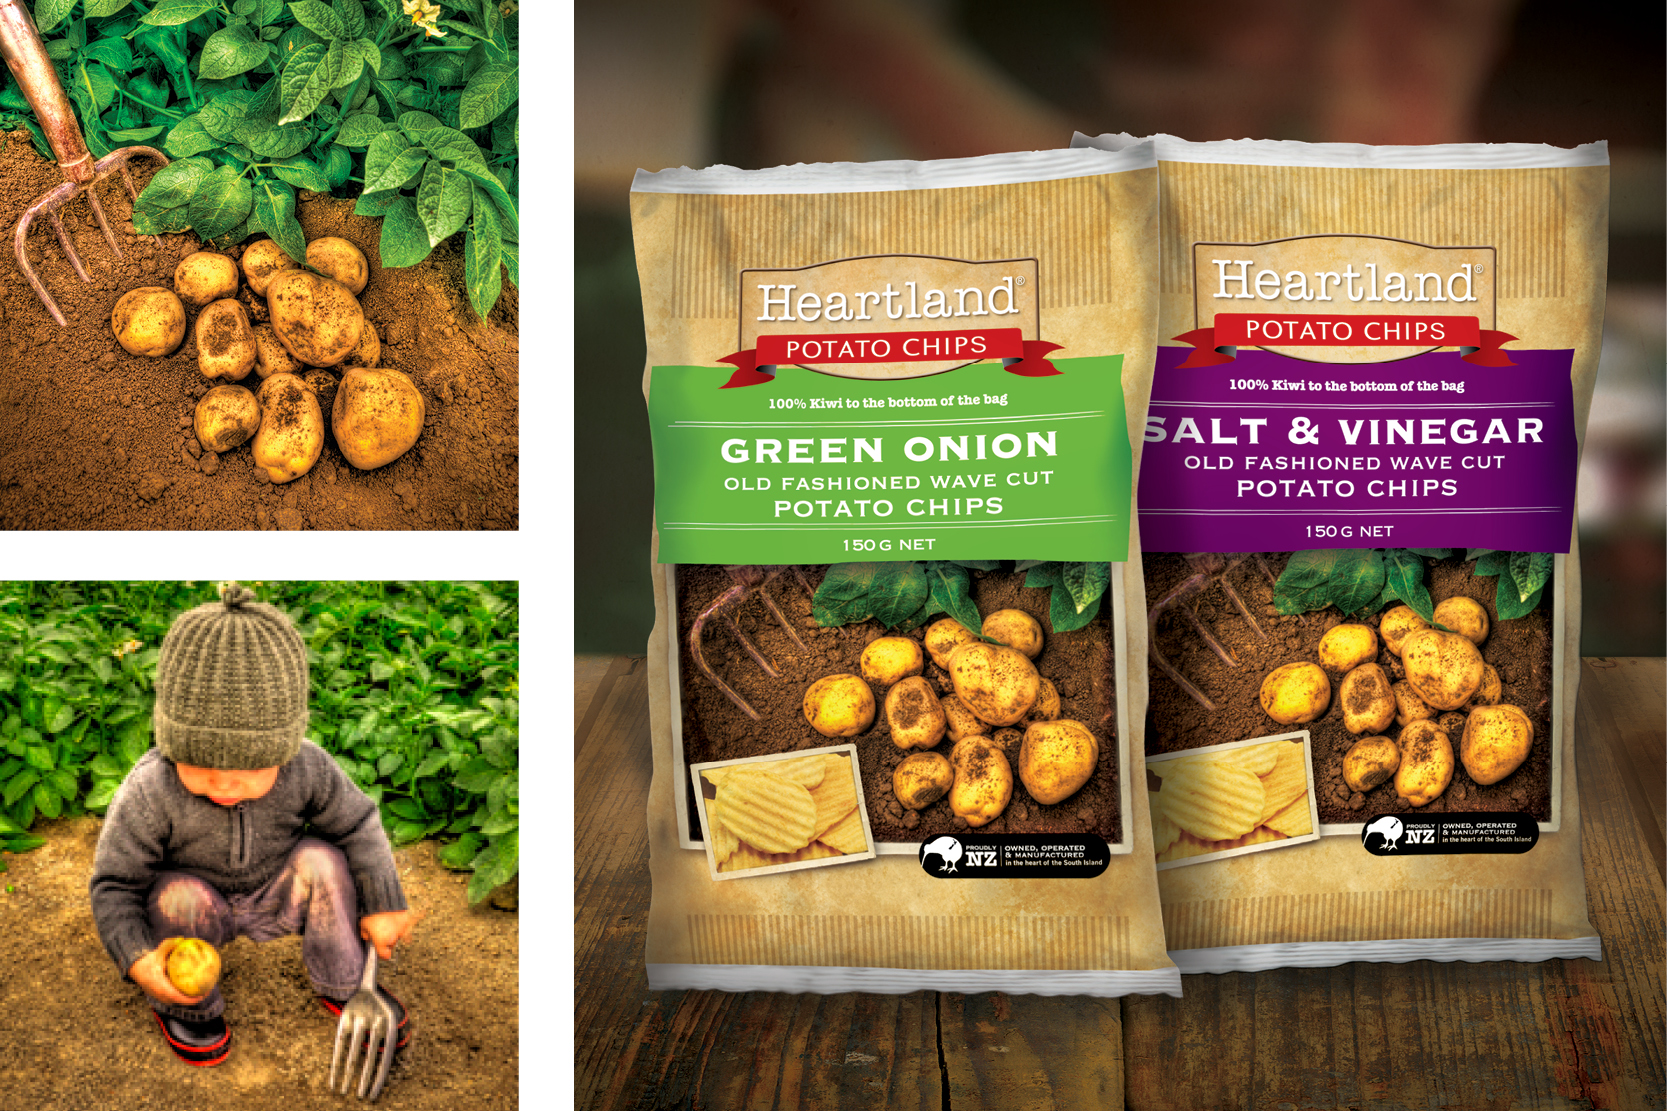 heartland packaging and brand identity